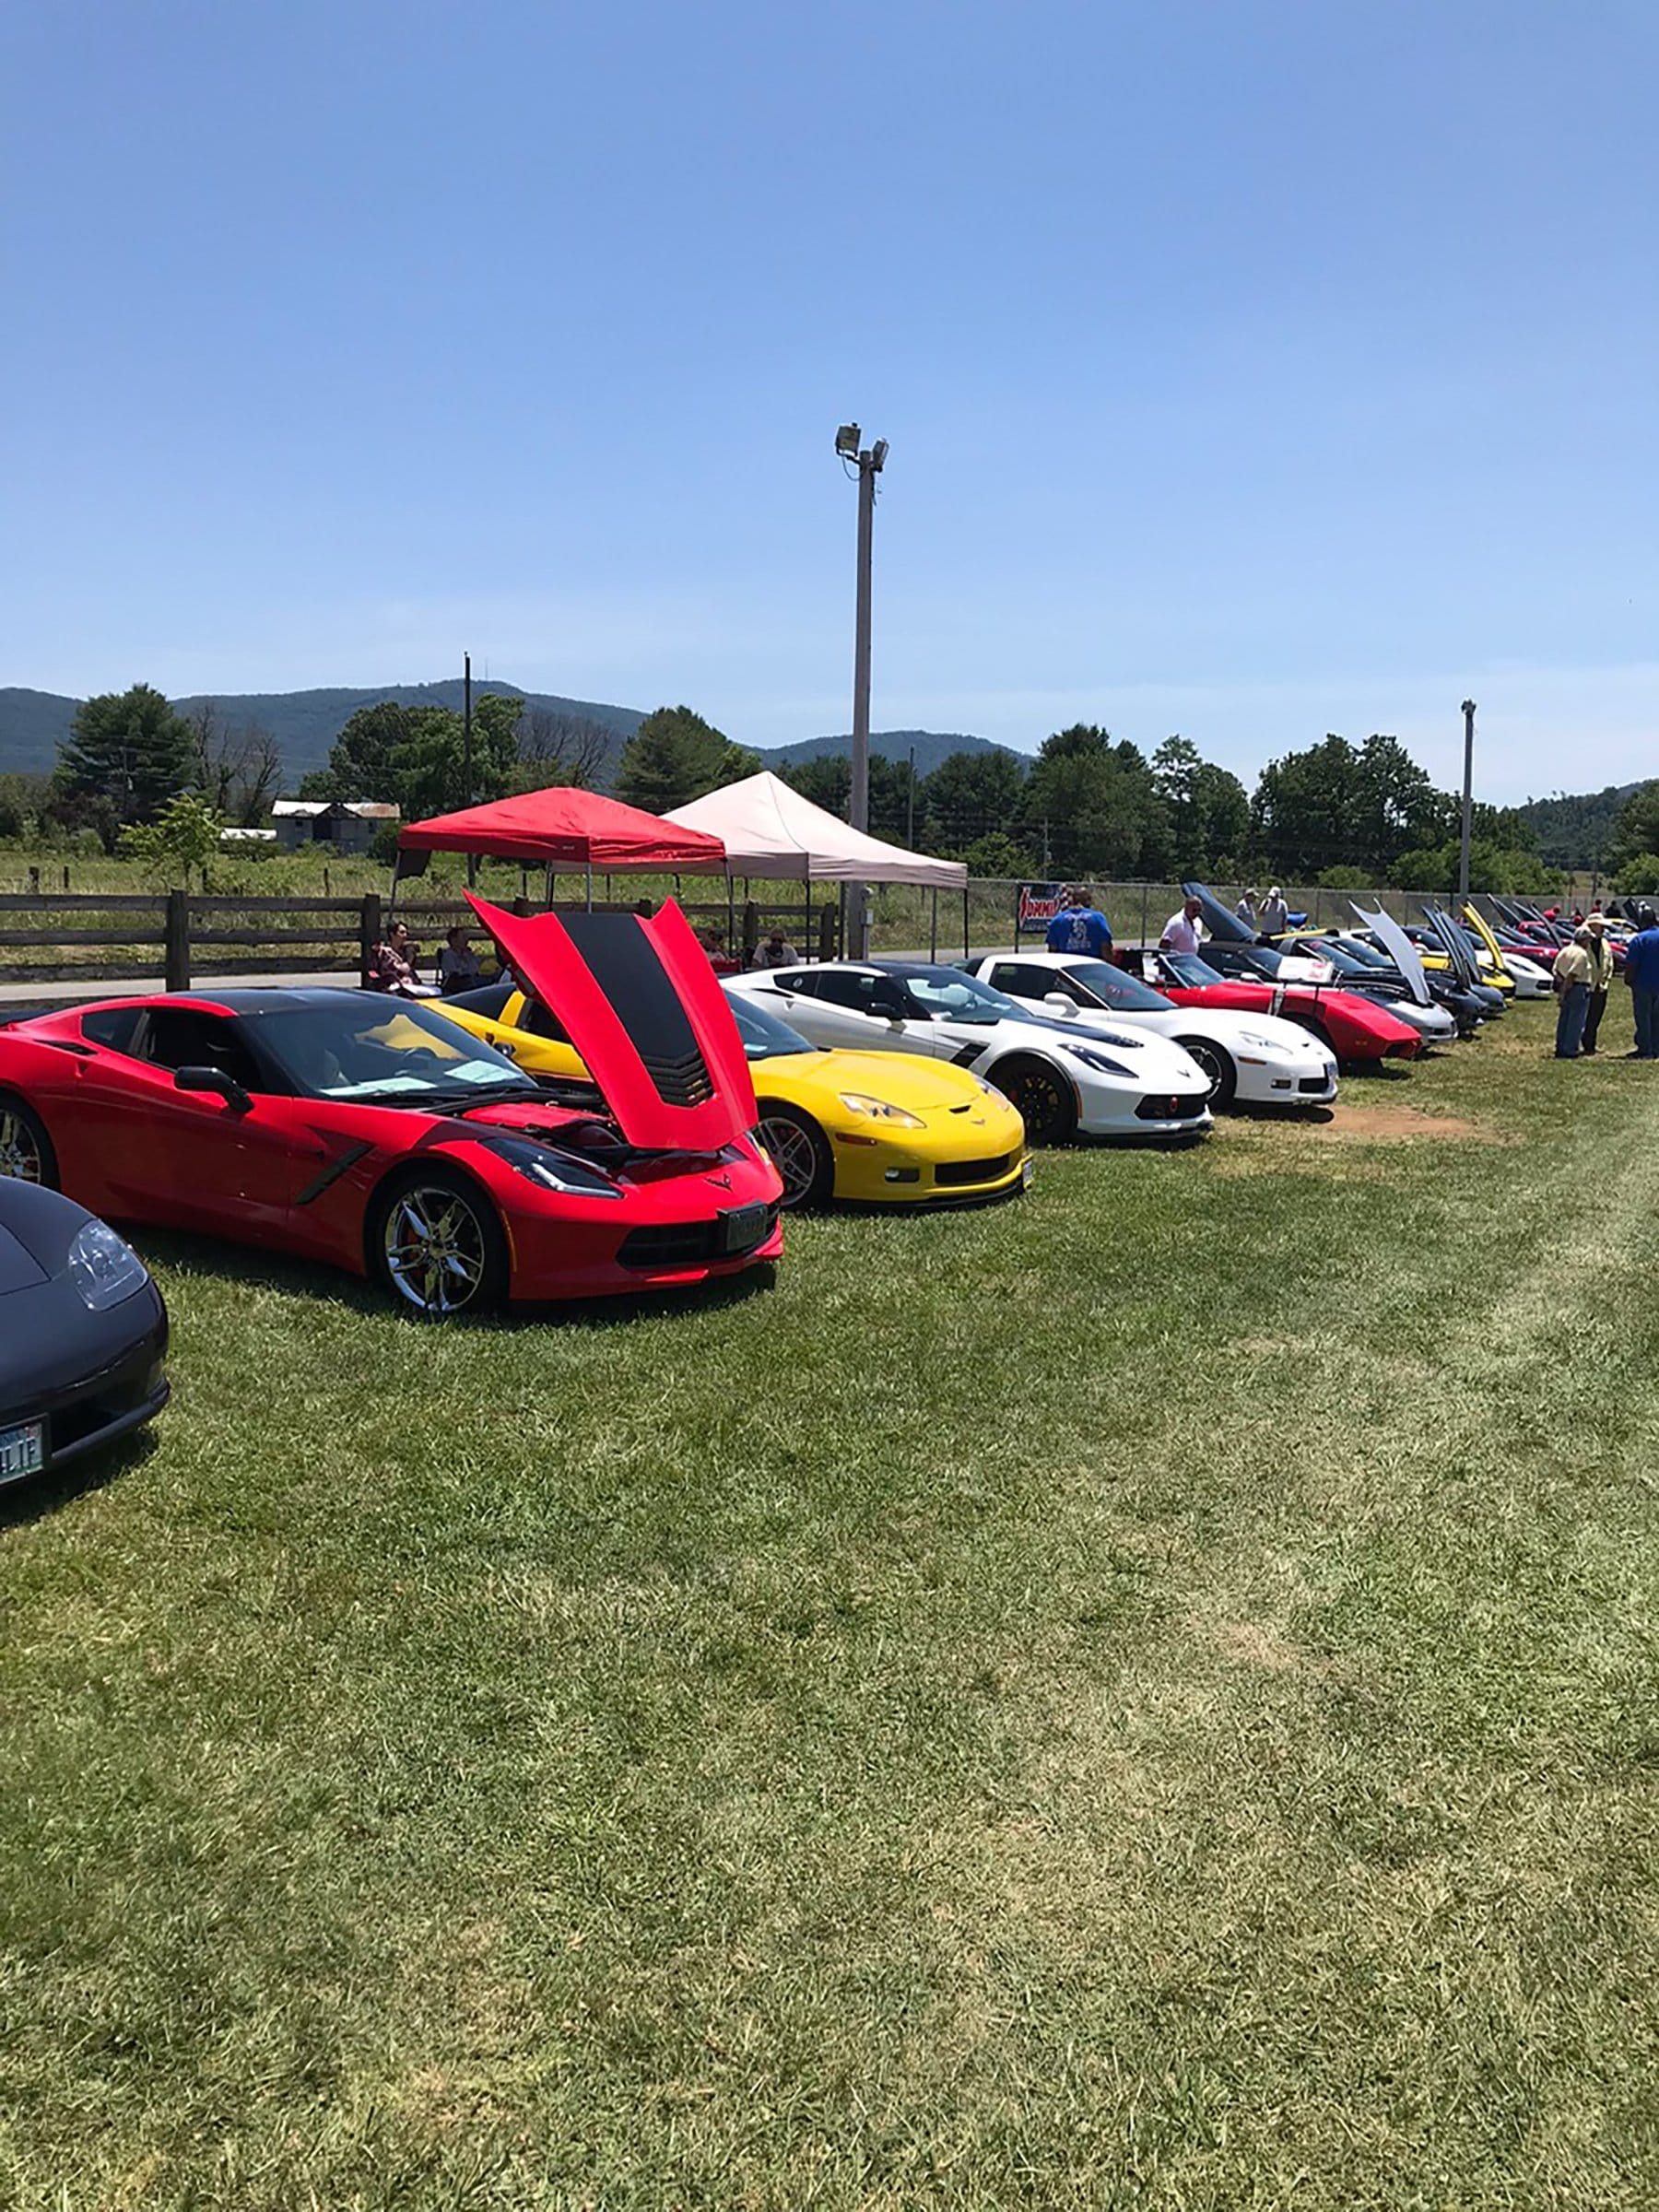 On June 15th, 2019, the Virginia Corvette Club hosted the Vettes at Sedalia, an all Corvette Cruise-In. Robert Anderson got us some photos to enjoy.